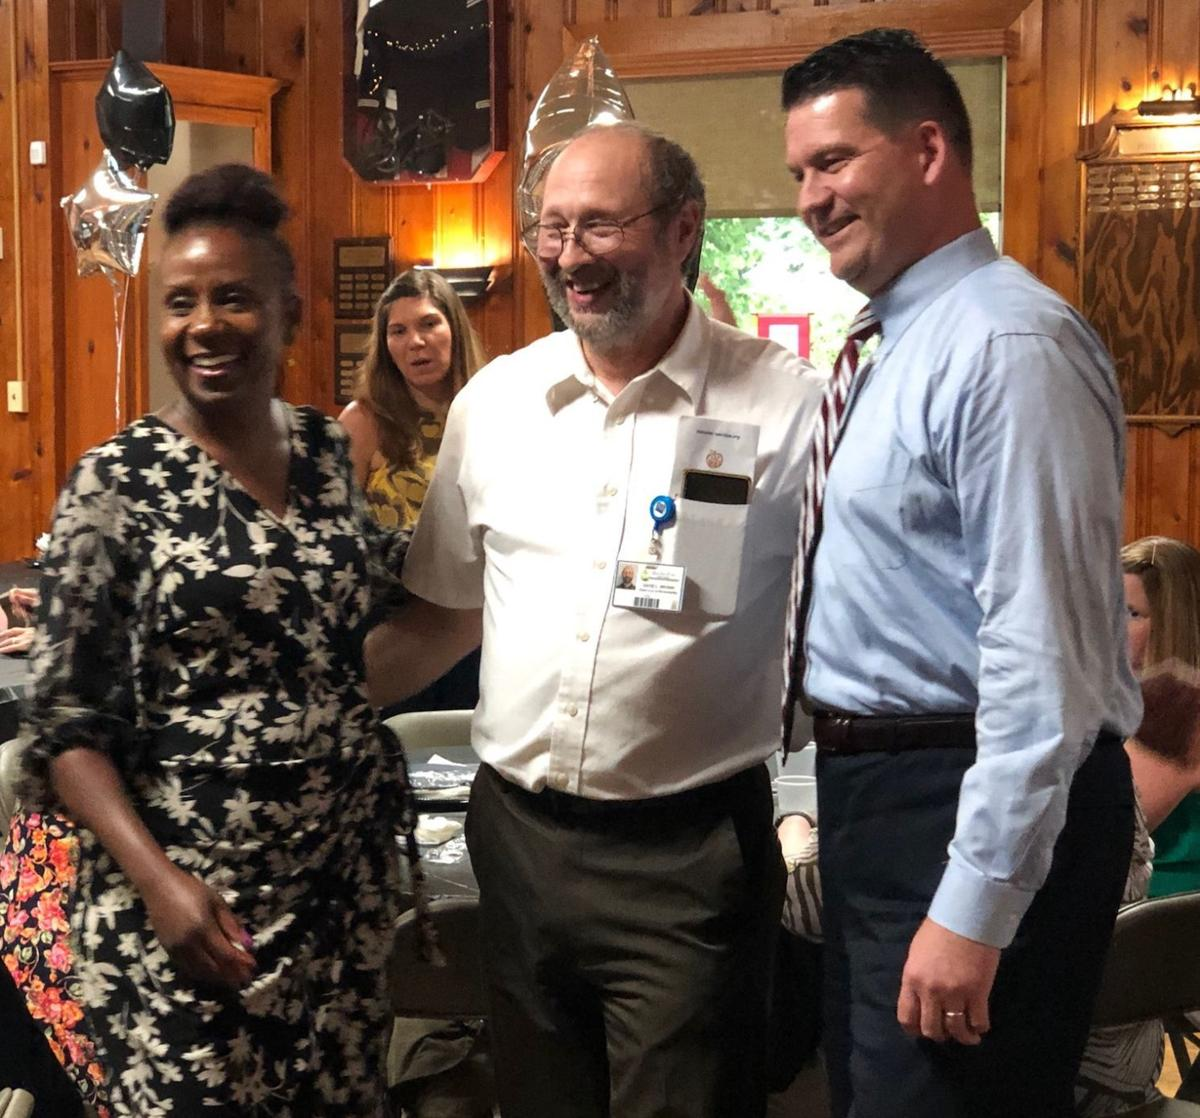 Brown retires after 38 years of service